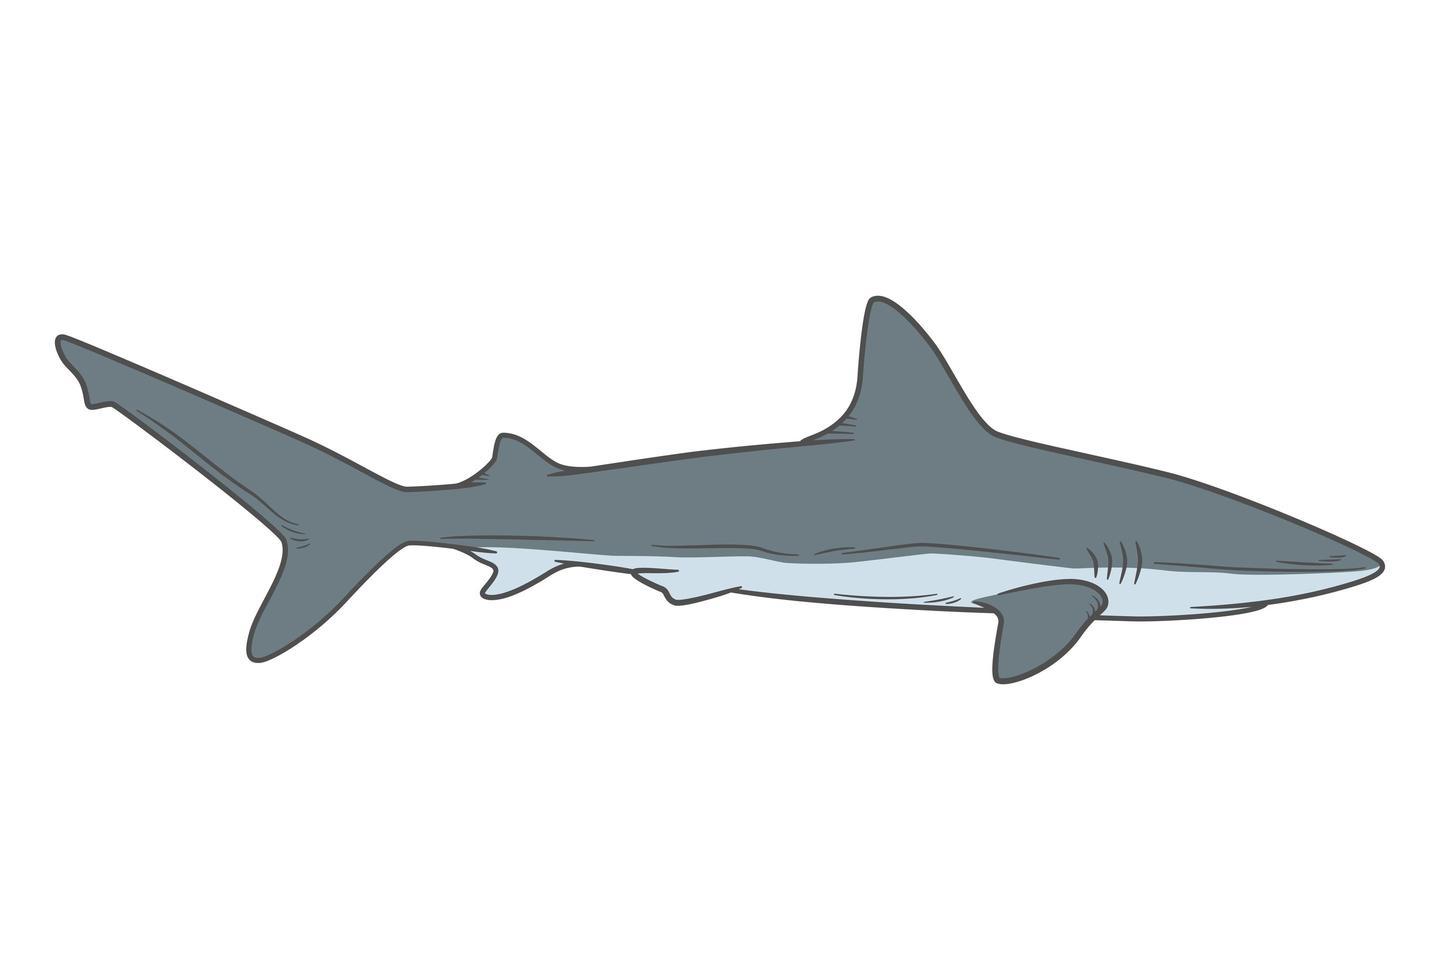 Illustration drawing style of shark vector